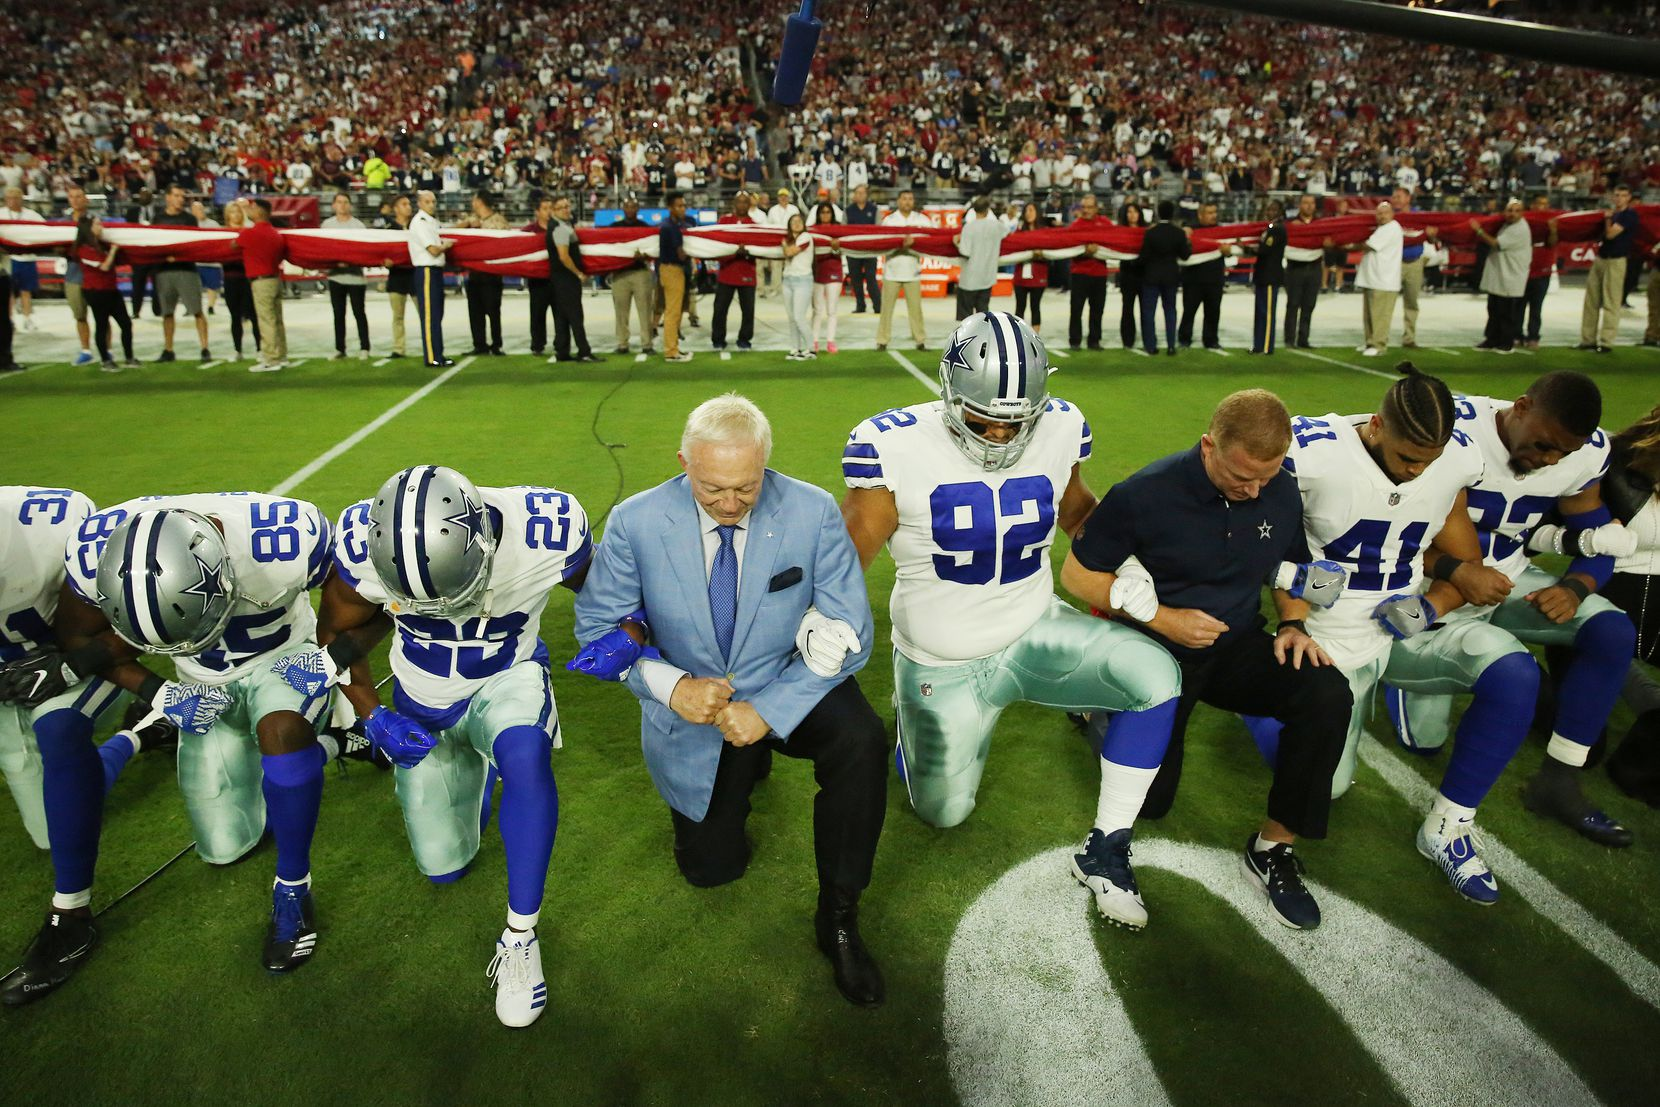 THE KNEEL -- OR, 'THE KNEEL HEARD ROUND THE WORLD?' -- Jerry Jones had a Monday Night Football stage, and he used it. Dallas Cowboys players and staff including owner Jerry Jones and head coach Jason Garrett take a knee with his team before the playing of the United States National Anthem before a National Football League game between the Dallas Cowboys and the Arizona Cardinals at University of Phoenix Stadium in Glendale, Arizona on Monday September 25, 2017.